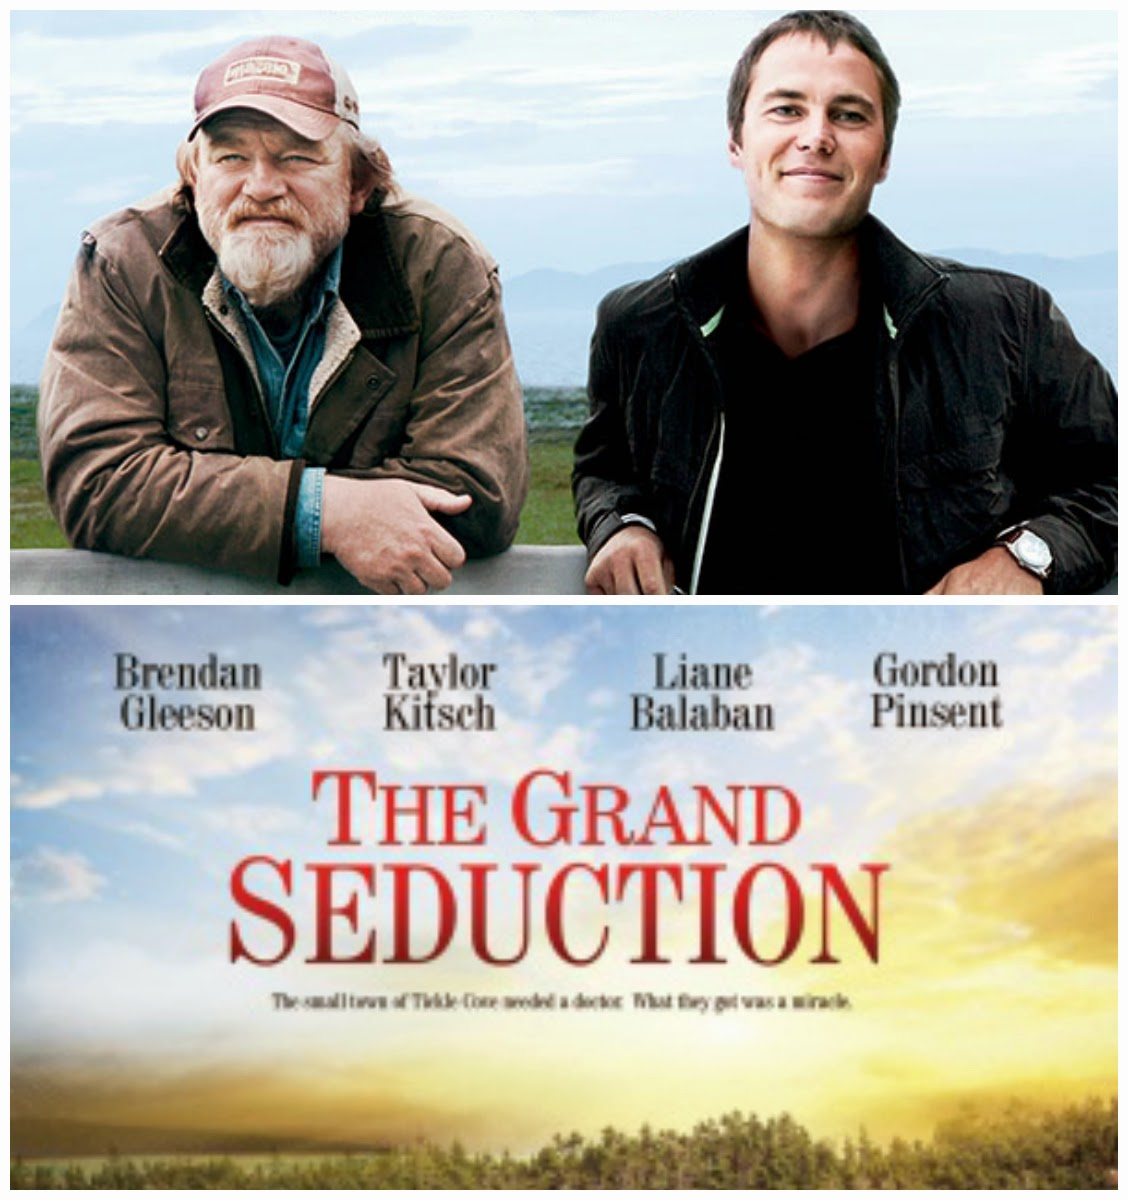 The Grand Seduction 2013 Movie Poster